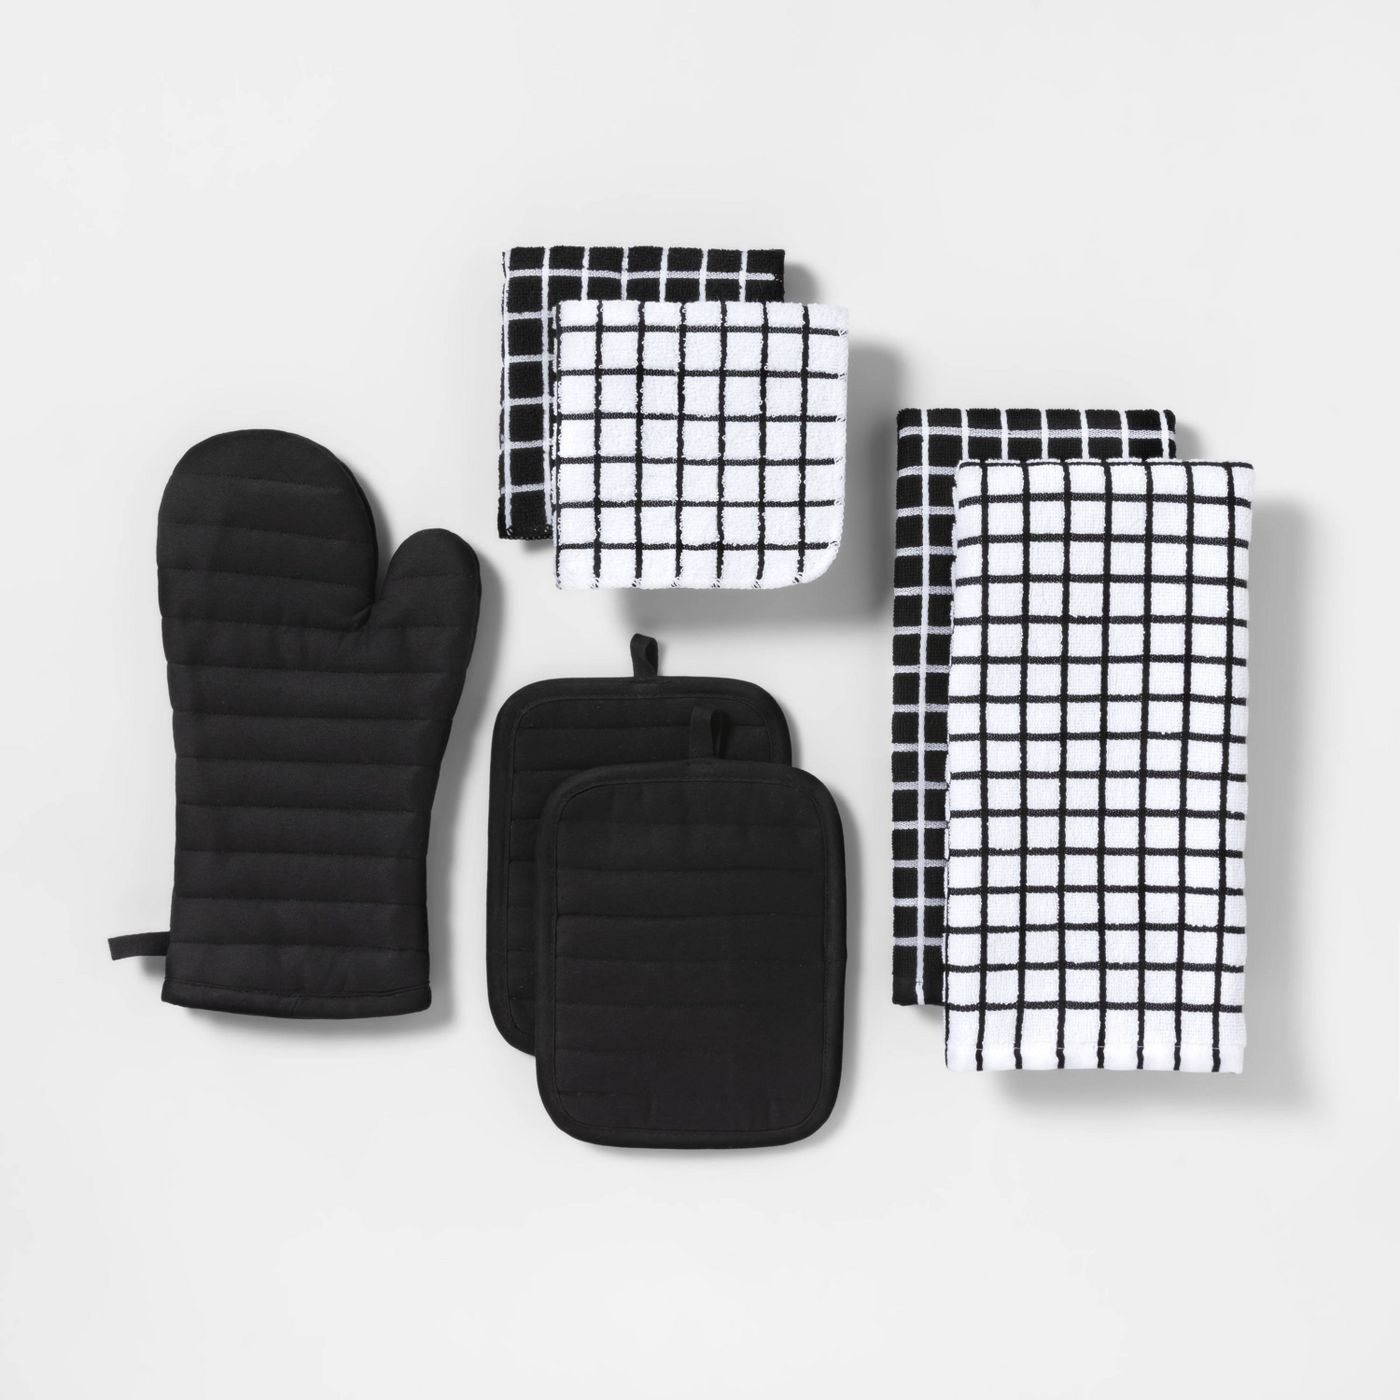 The black kitchen textile set